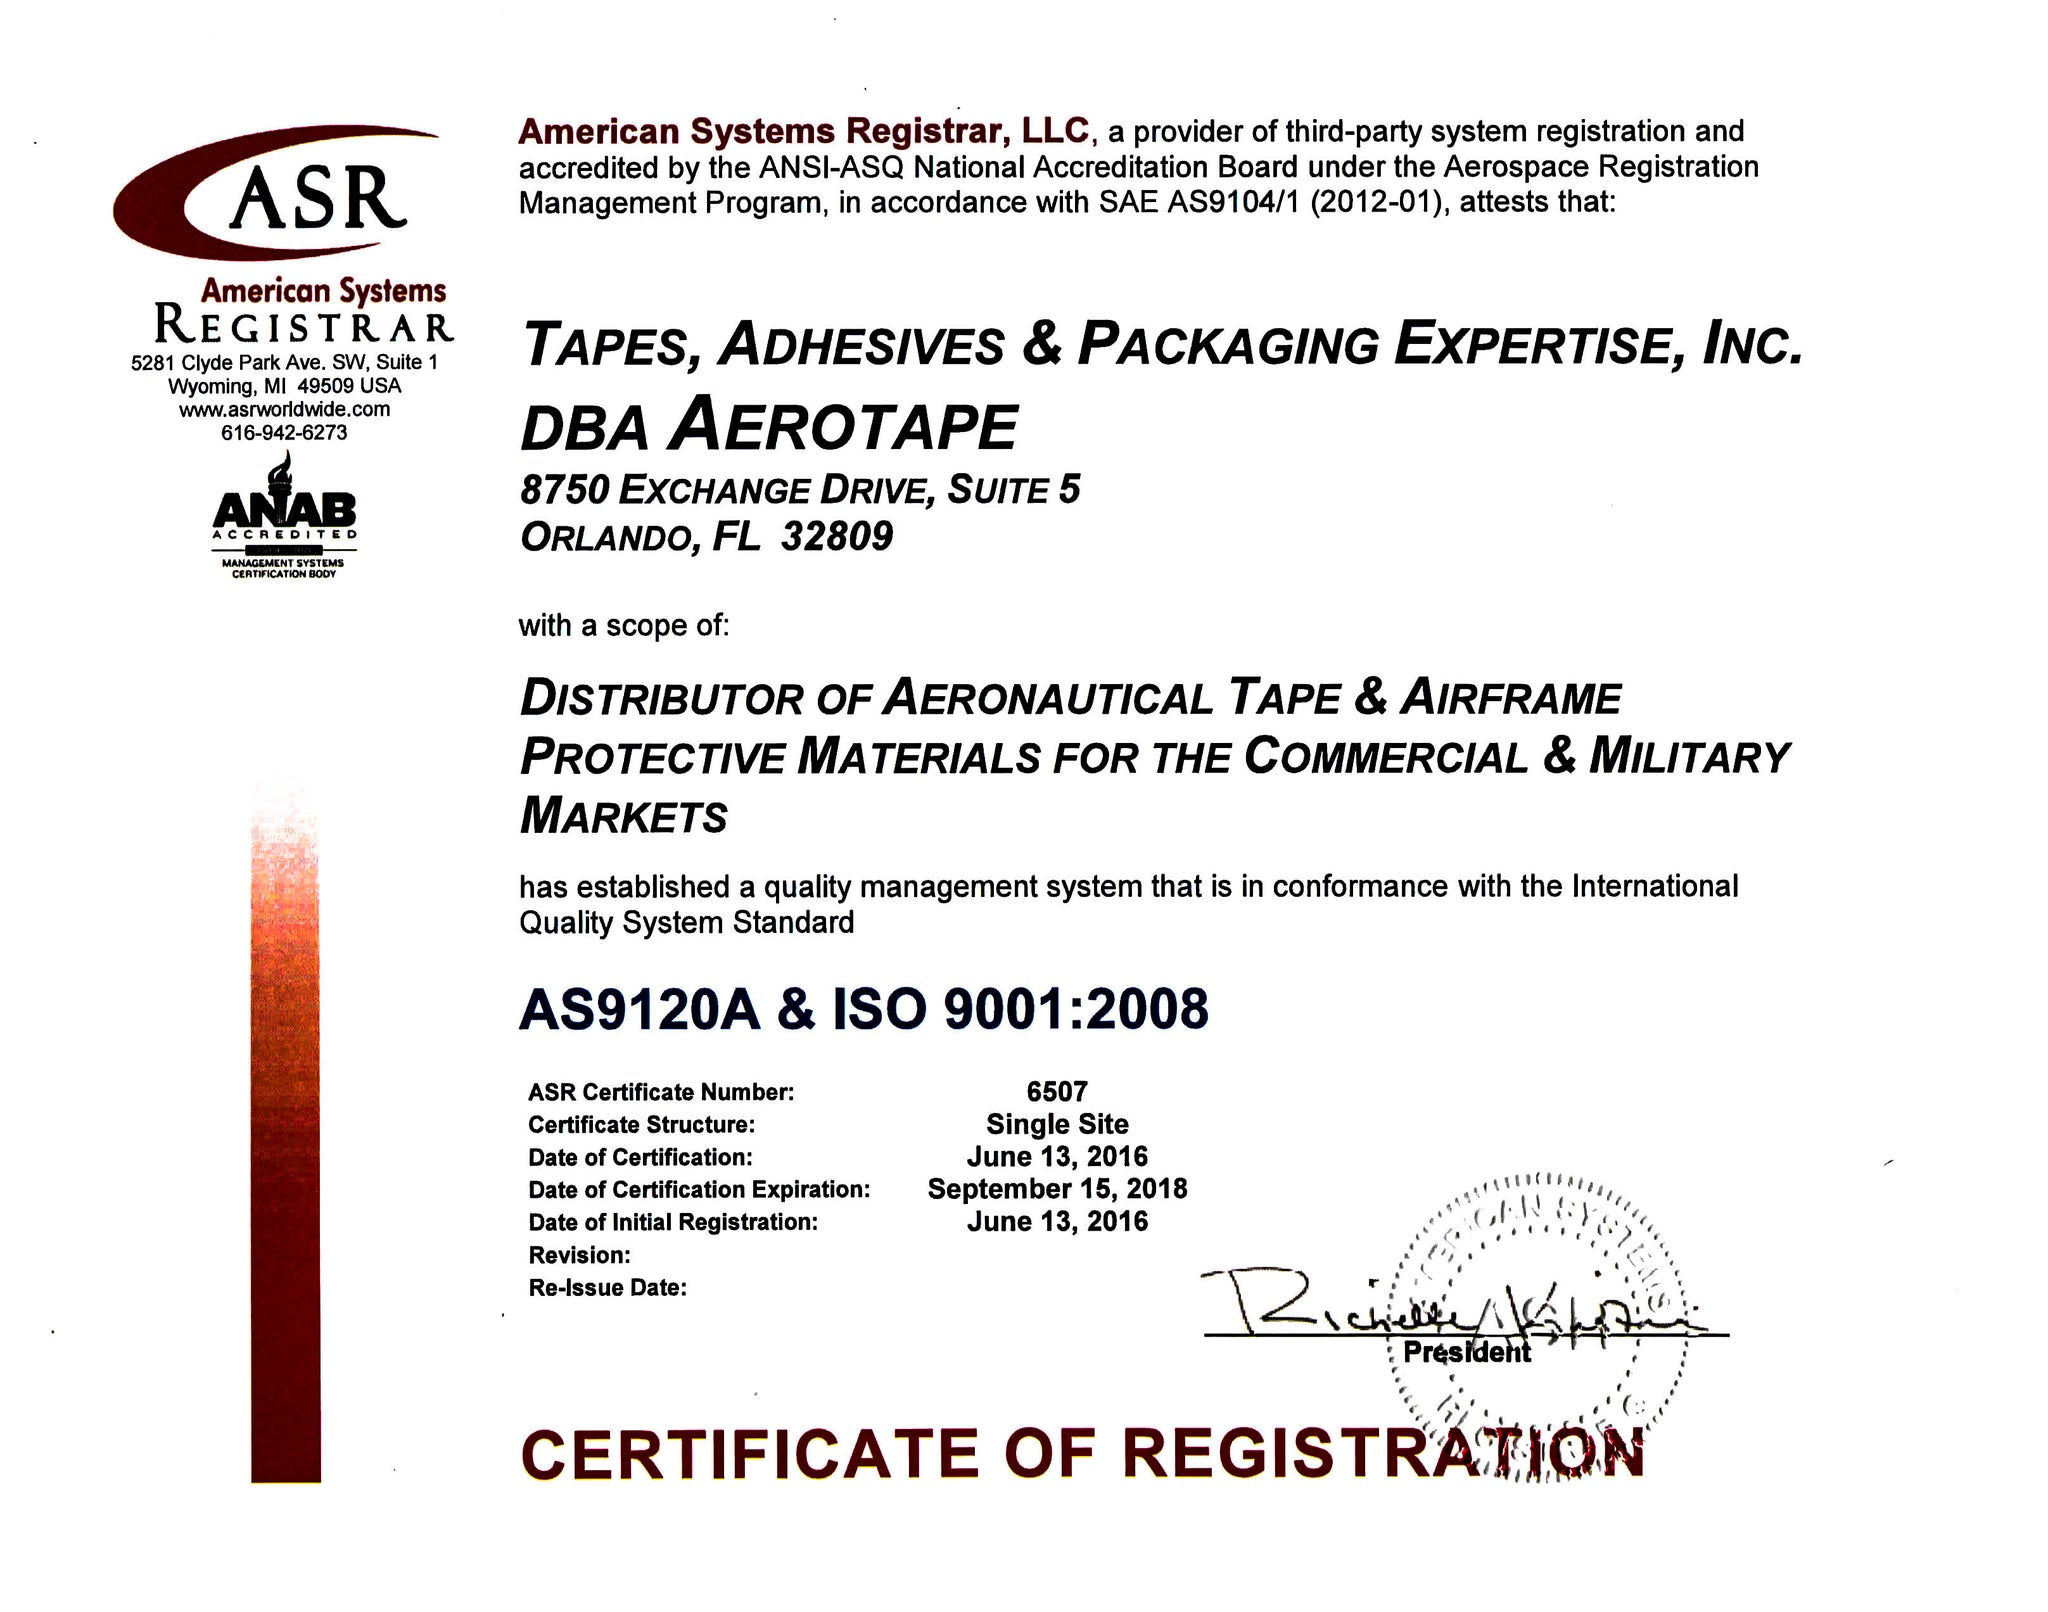 AEROTAPE AS9120A & ISO 9001:2008 Certification